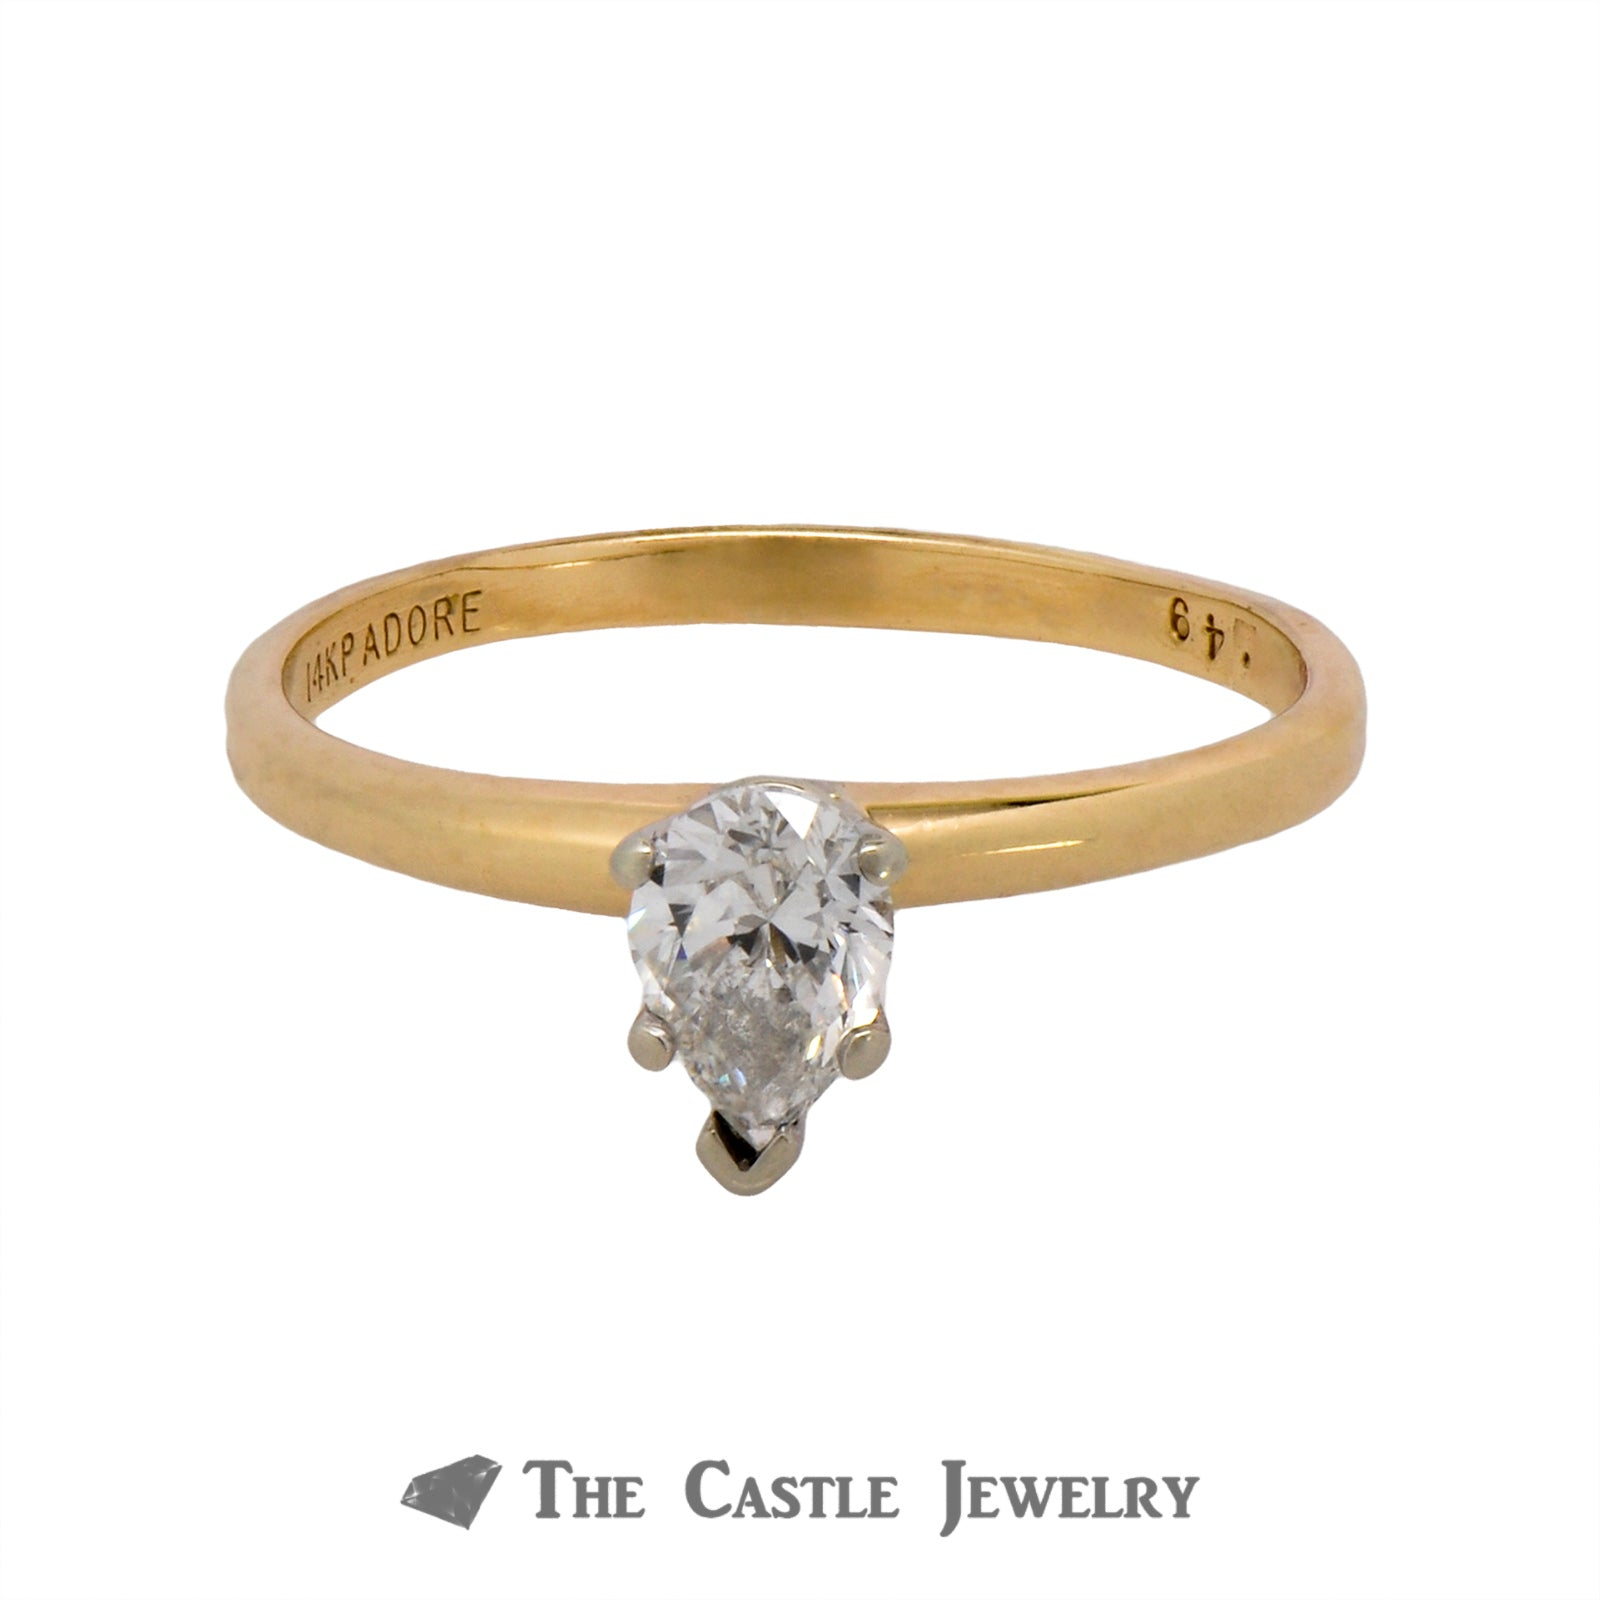 Lovely .49ct Pear Shaped Solitaire Diamond Engagement Ring Crafted in 14K Yellow Gold